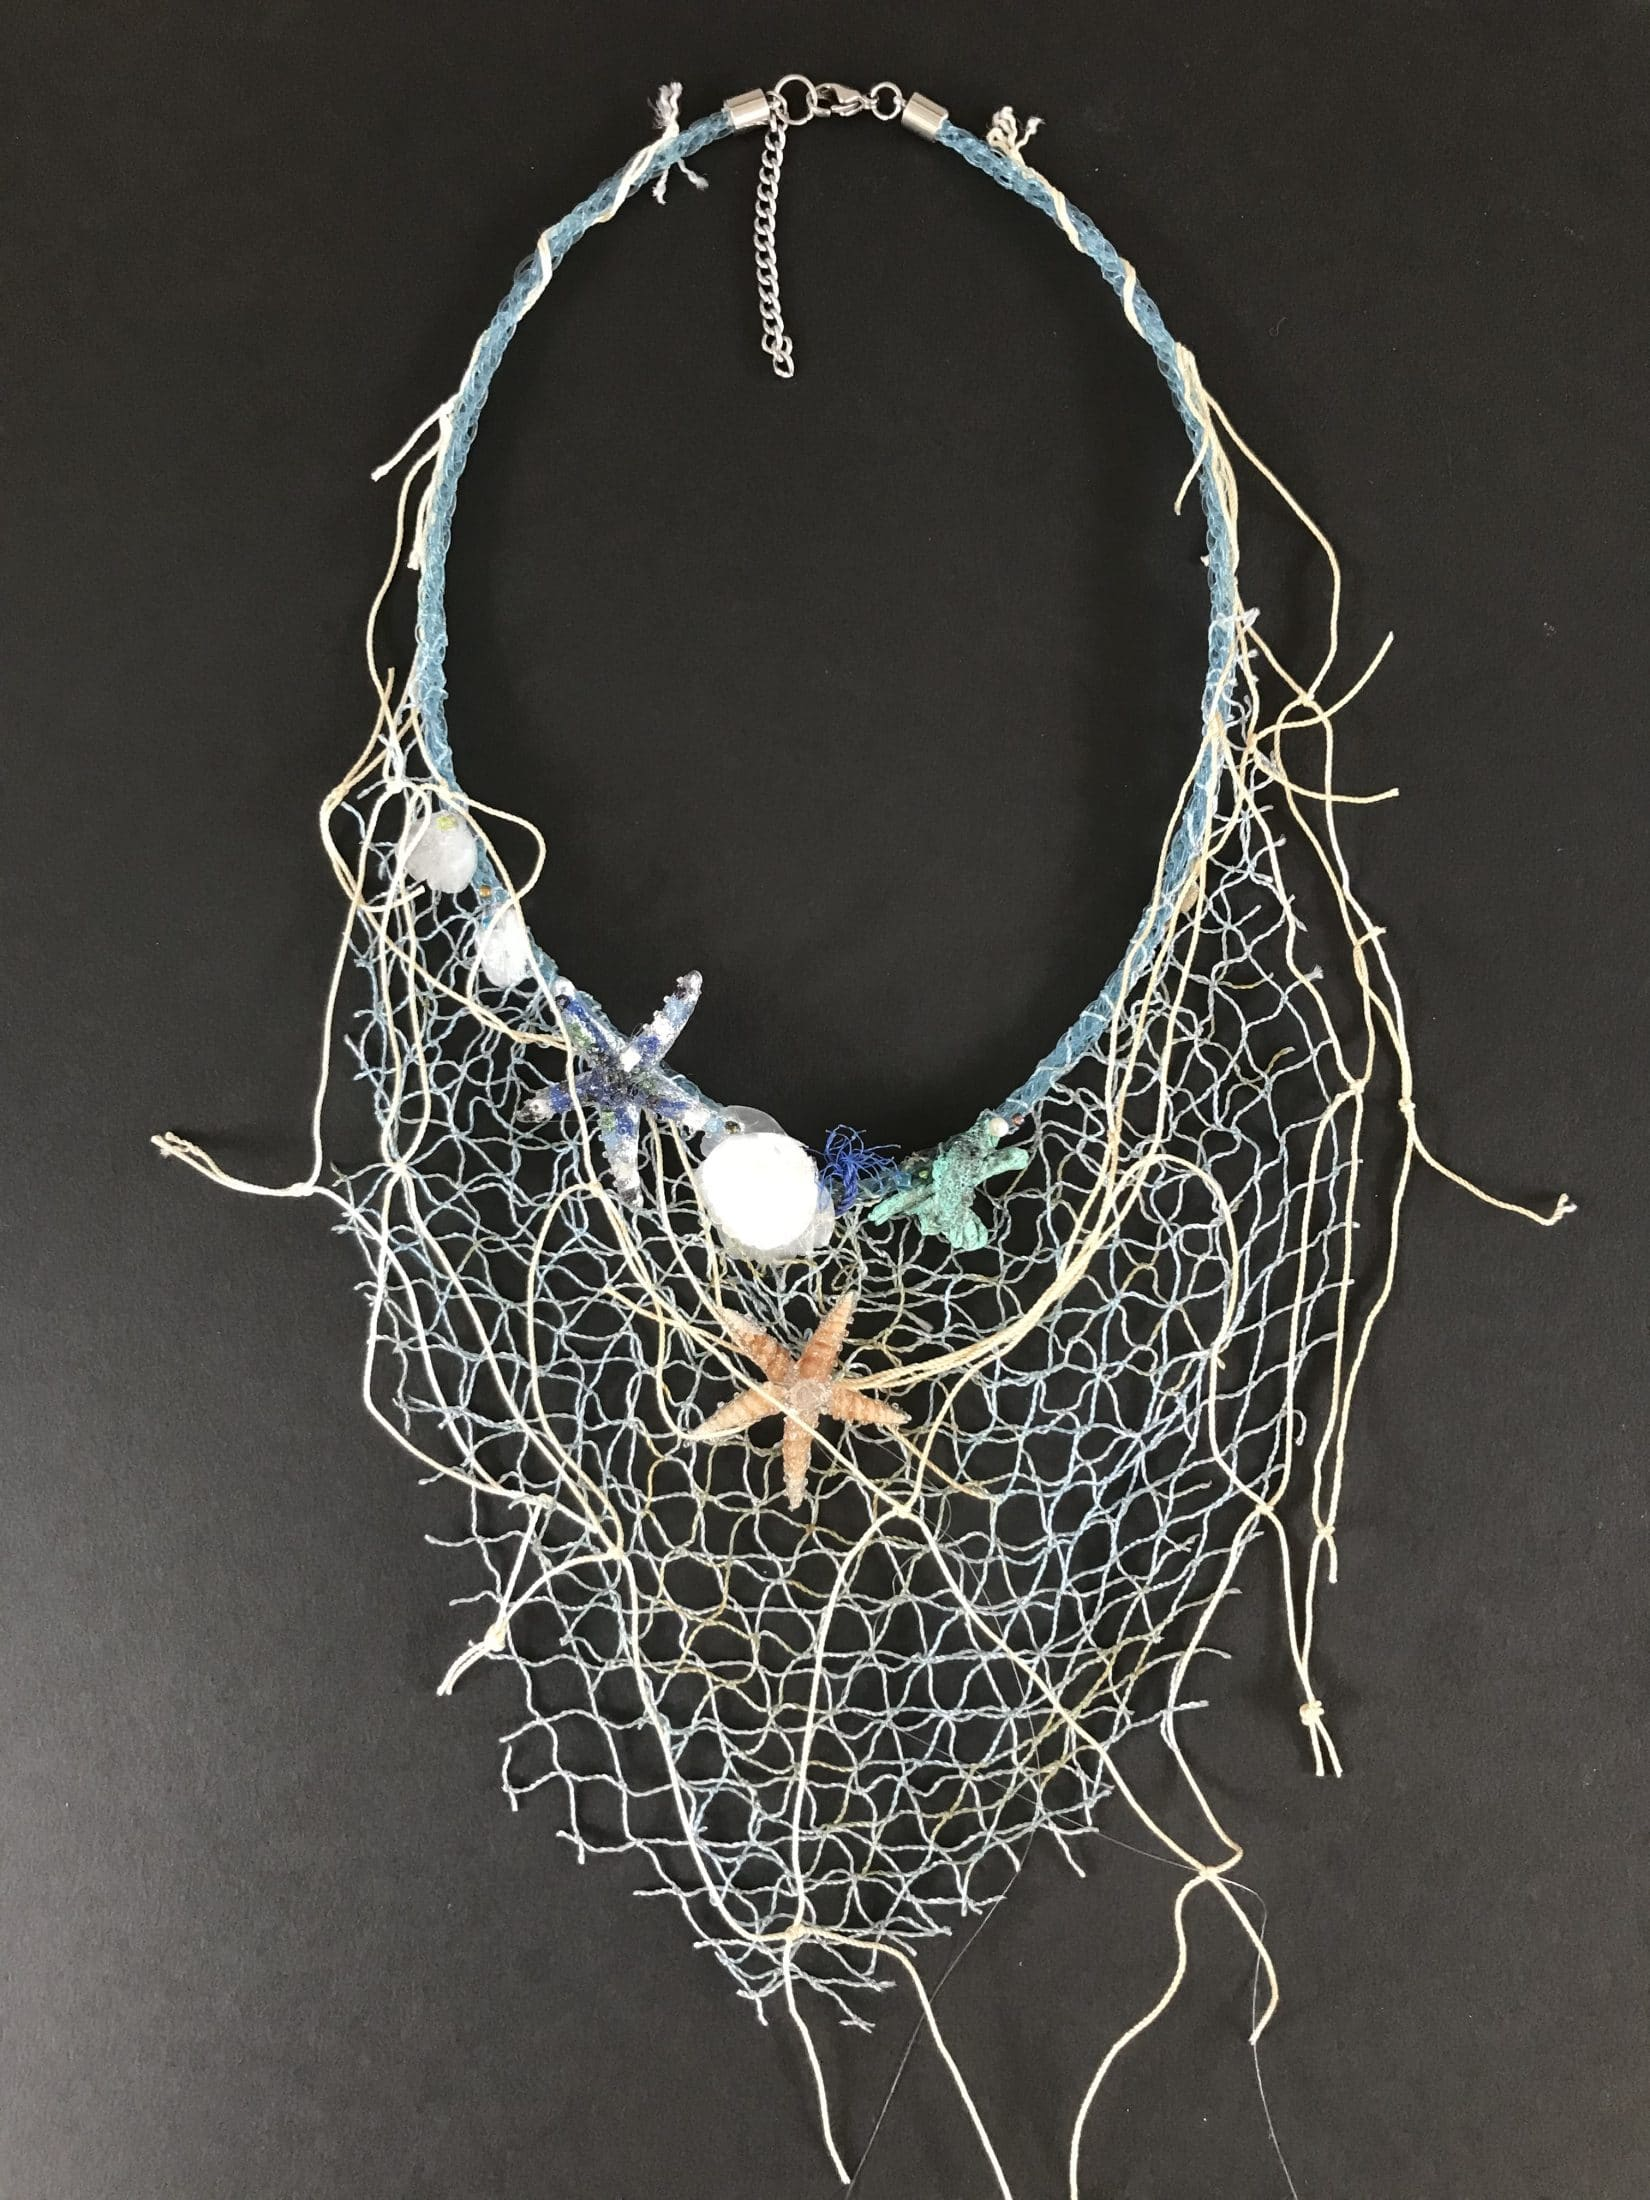 Ocean Theme. PMC Artisan crafted \u201cCoral Reef Friends\u201d Necklace with Lab Ruby